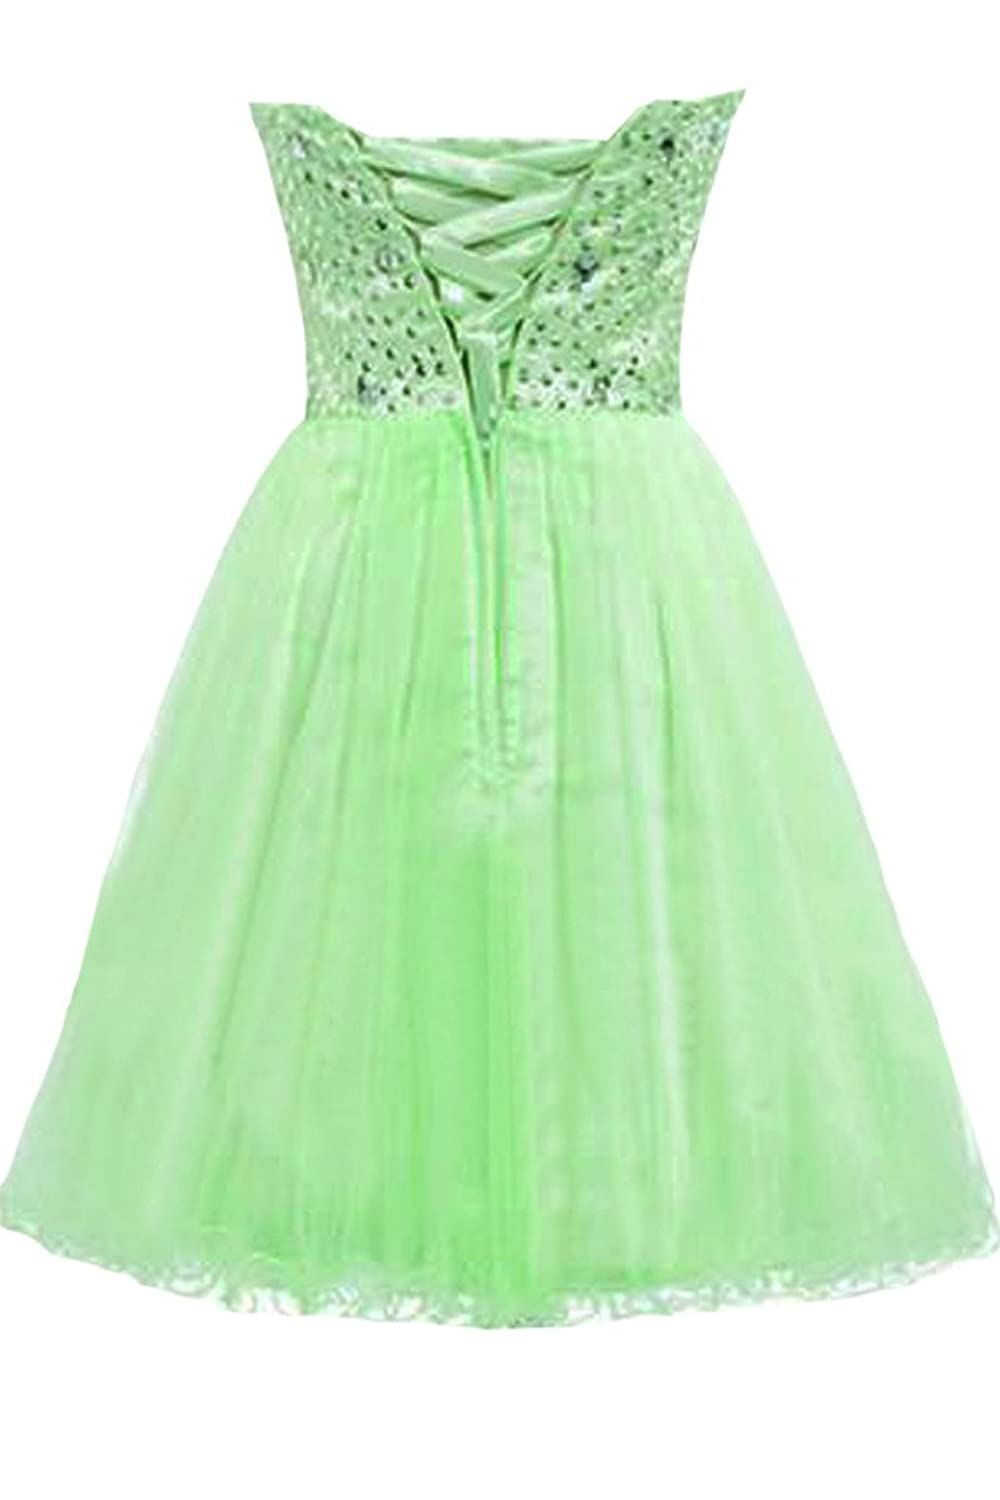 Sunvary Sequins and Rhinestones A Line Sweetheart Tulle Short Party Gowns Cocktail Dresses